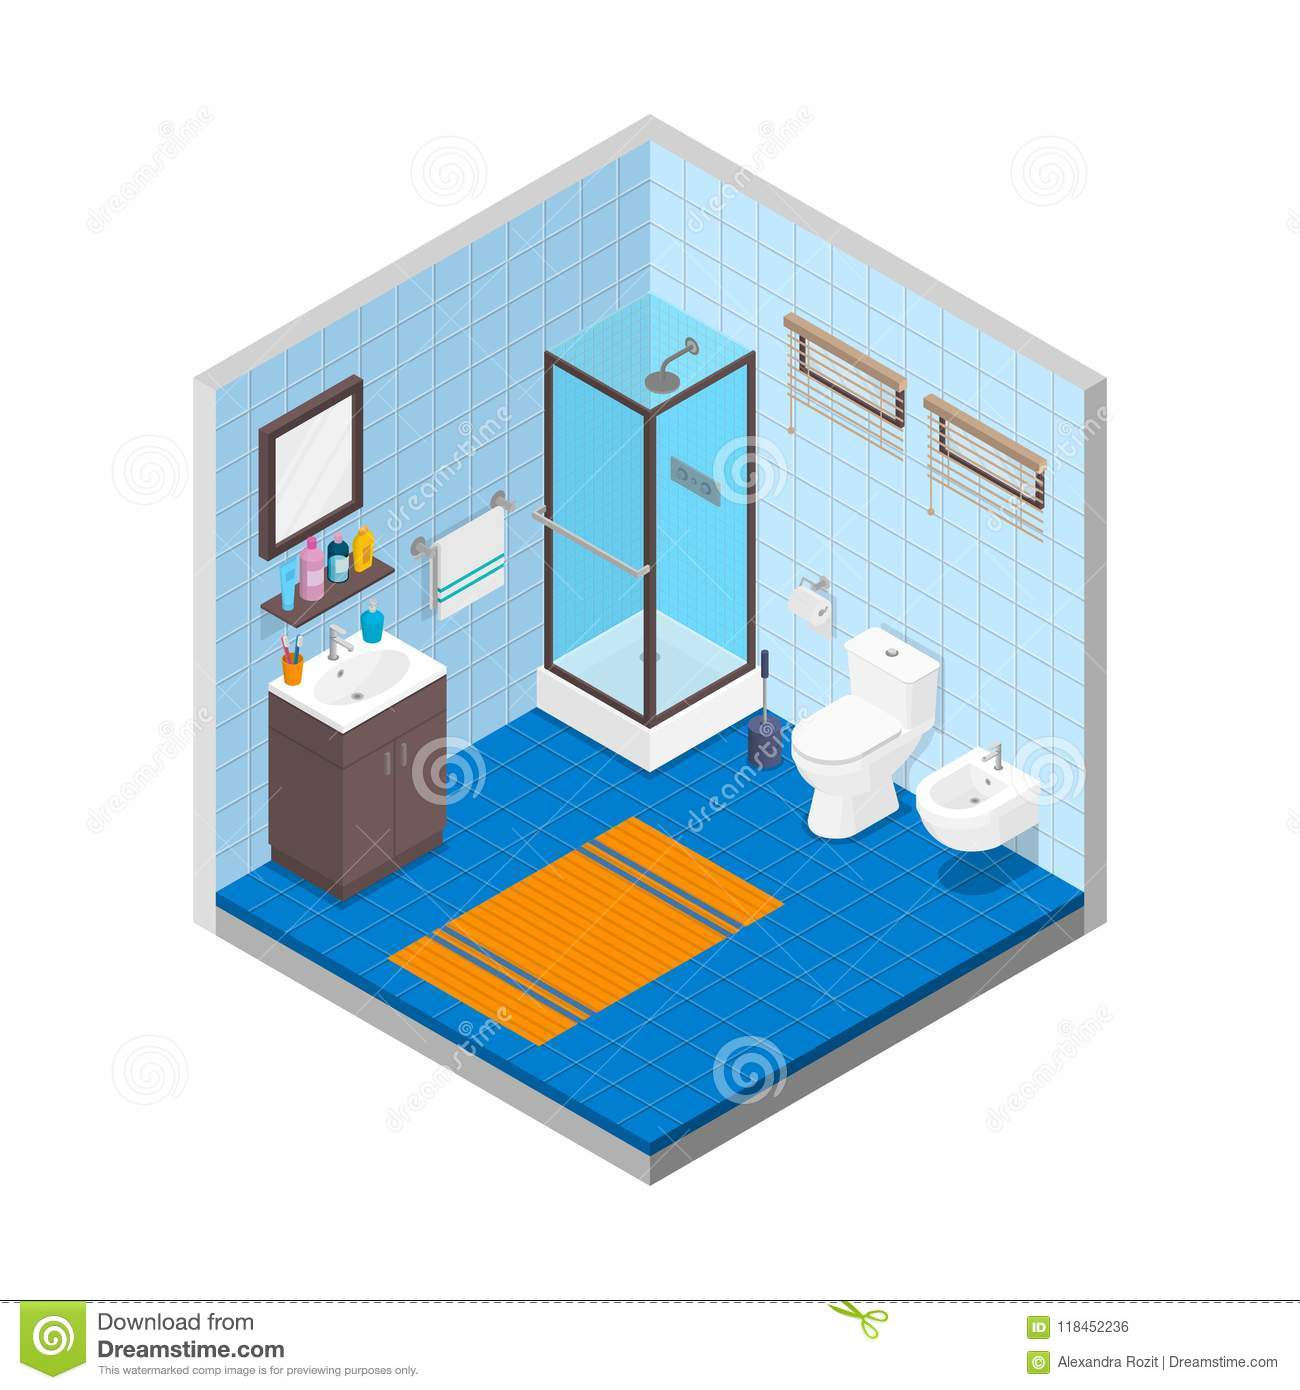 vector bathroom isometric design interior template room with tiles